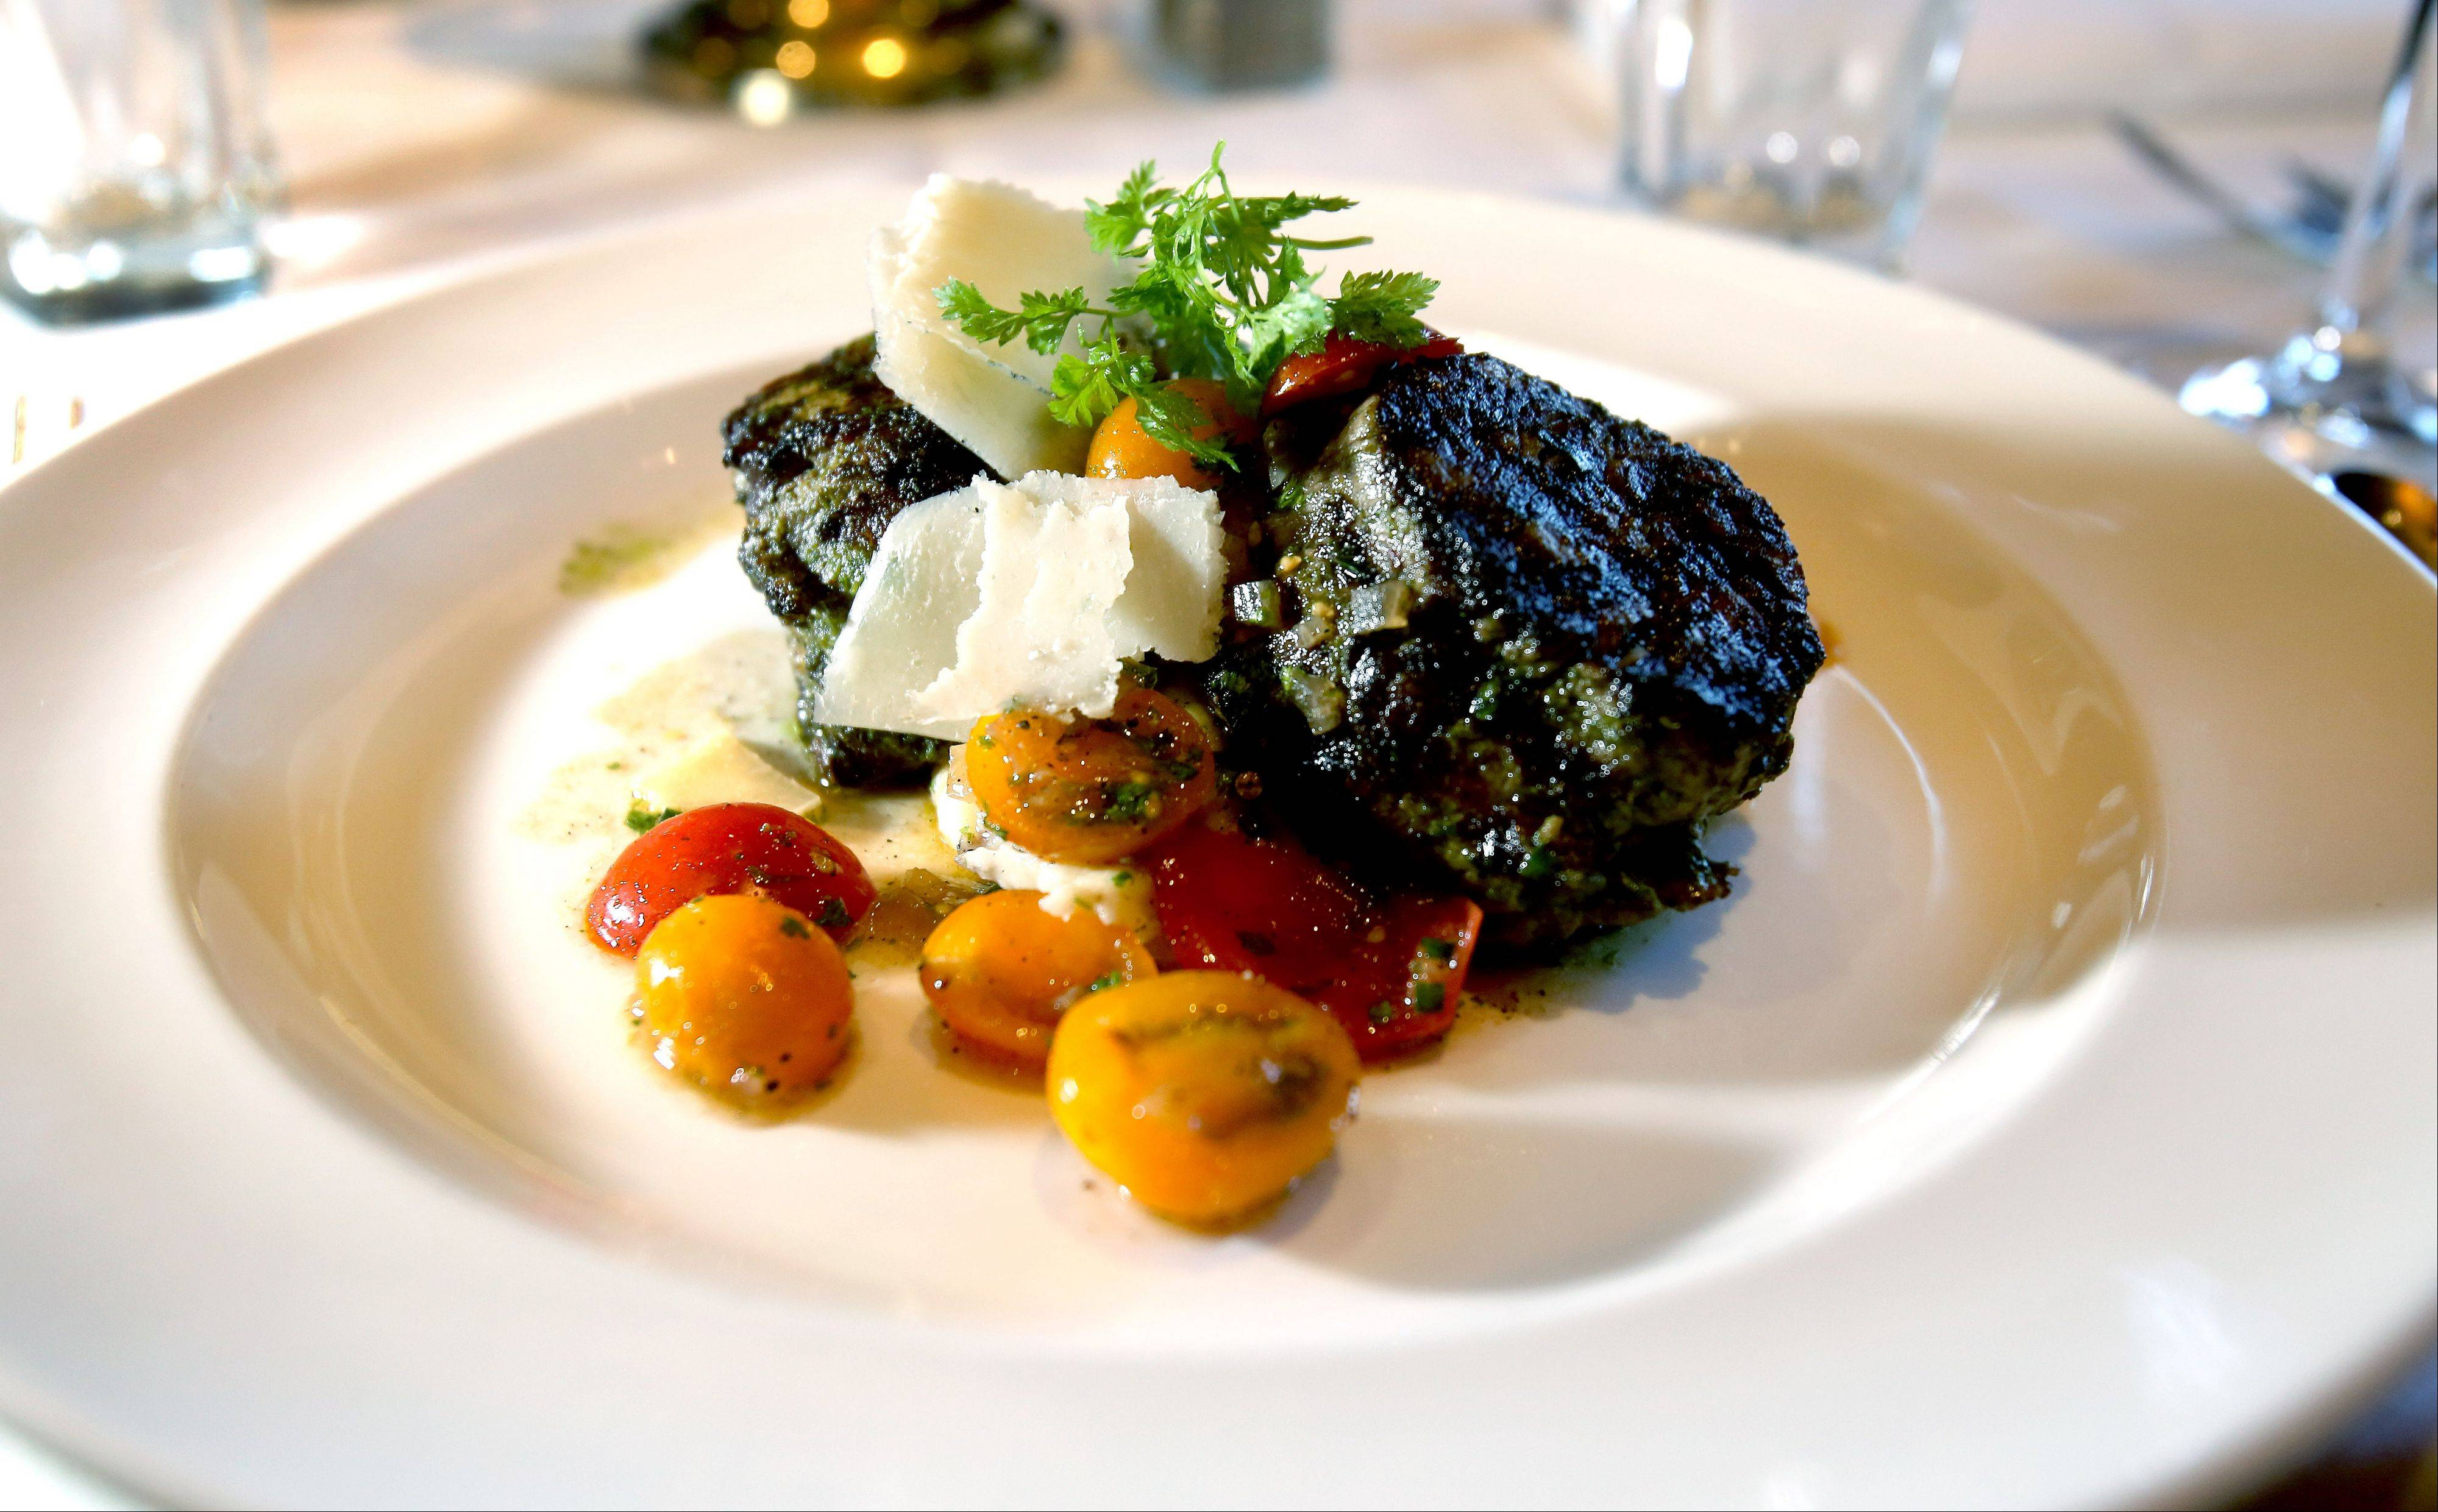 Chicago Restaurant Week diners can sample Parmesan herb marinated tournedos with heirloom tomatoes at The Capital Grille in Lombard.